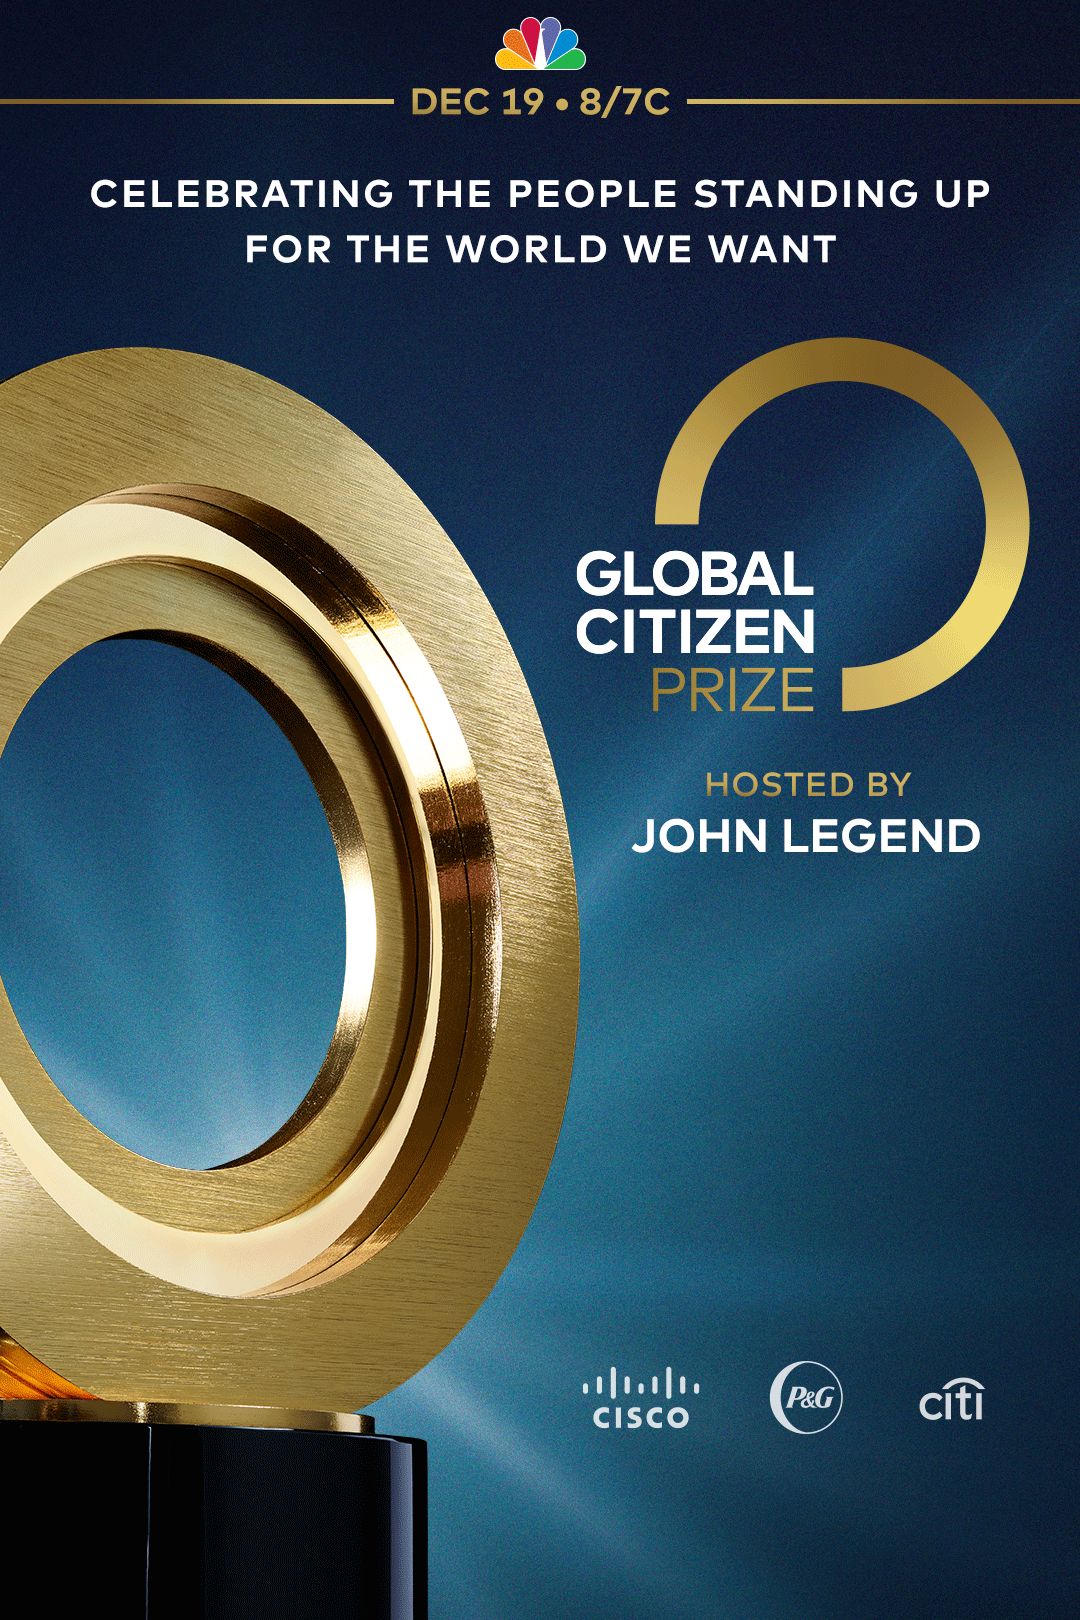 Global Citizen Prize logo and banner image